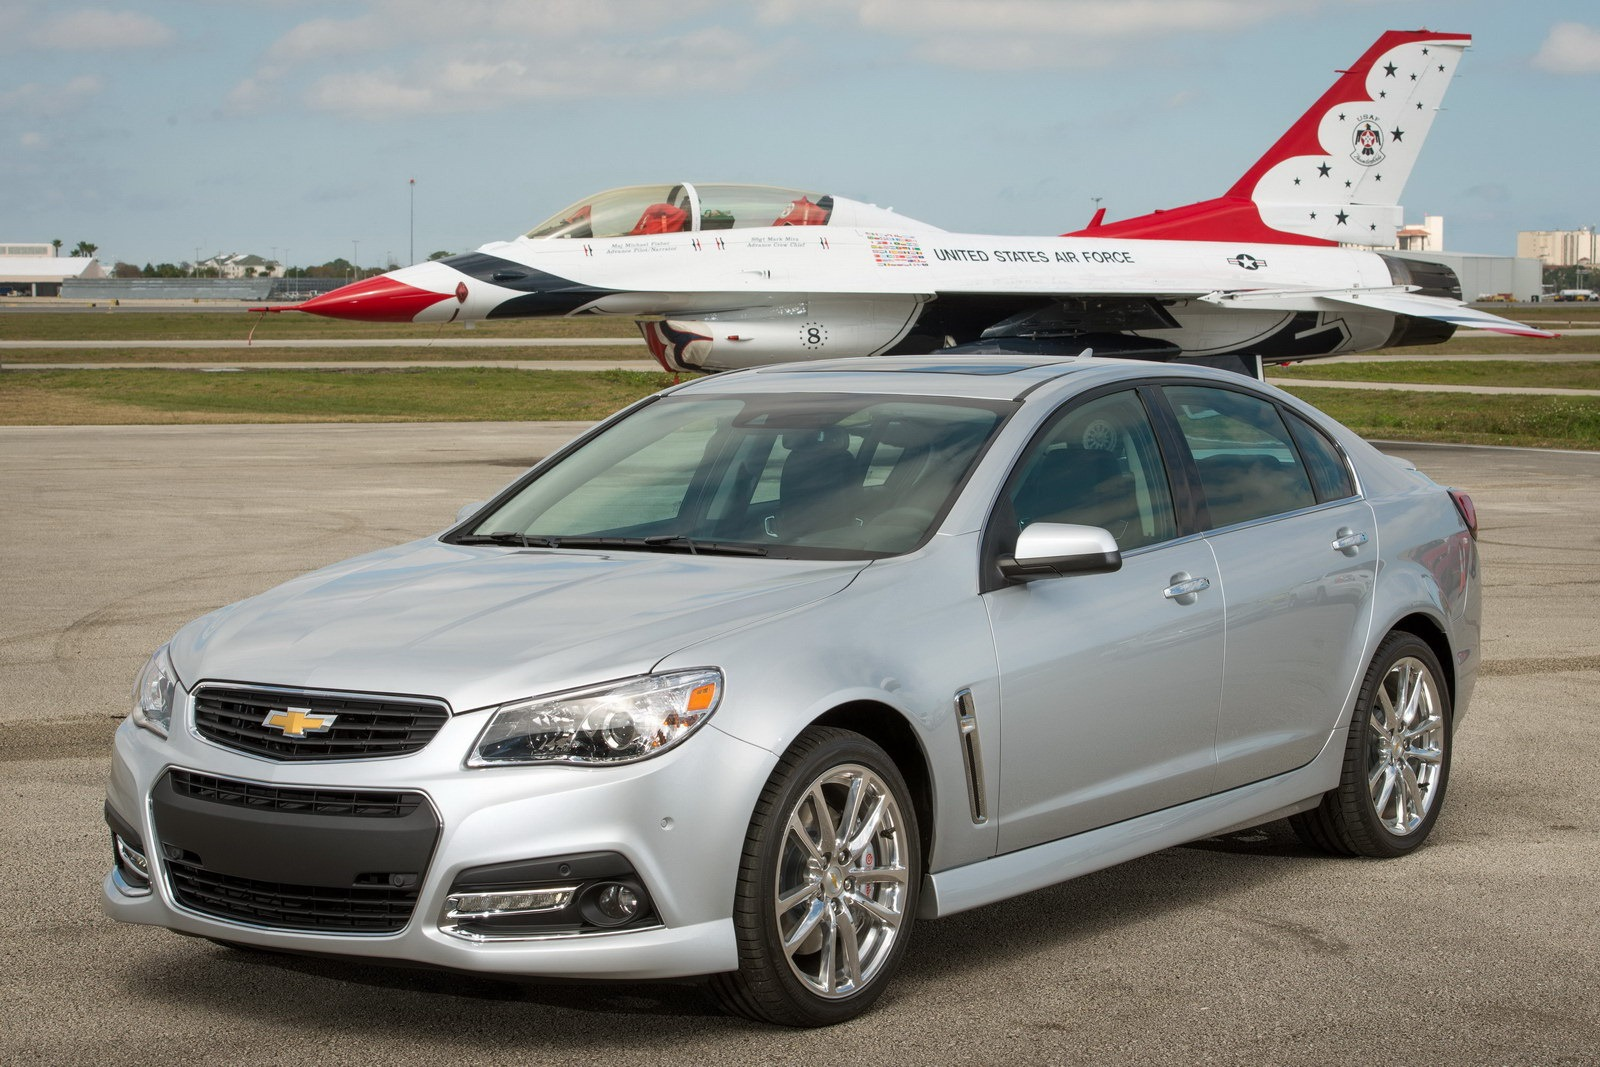 2014 Chevrolet SS | AmcarGuide.com - American muscle car guide